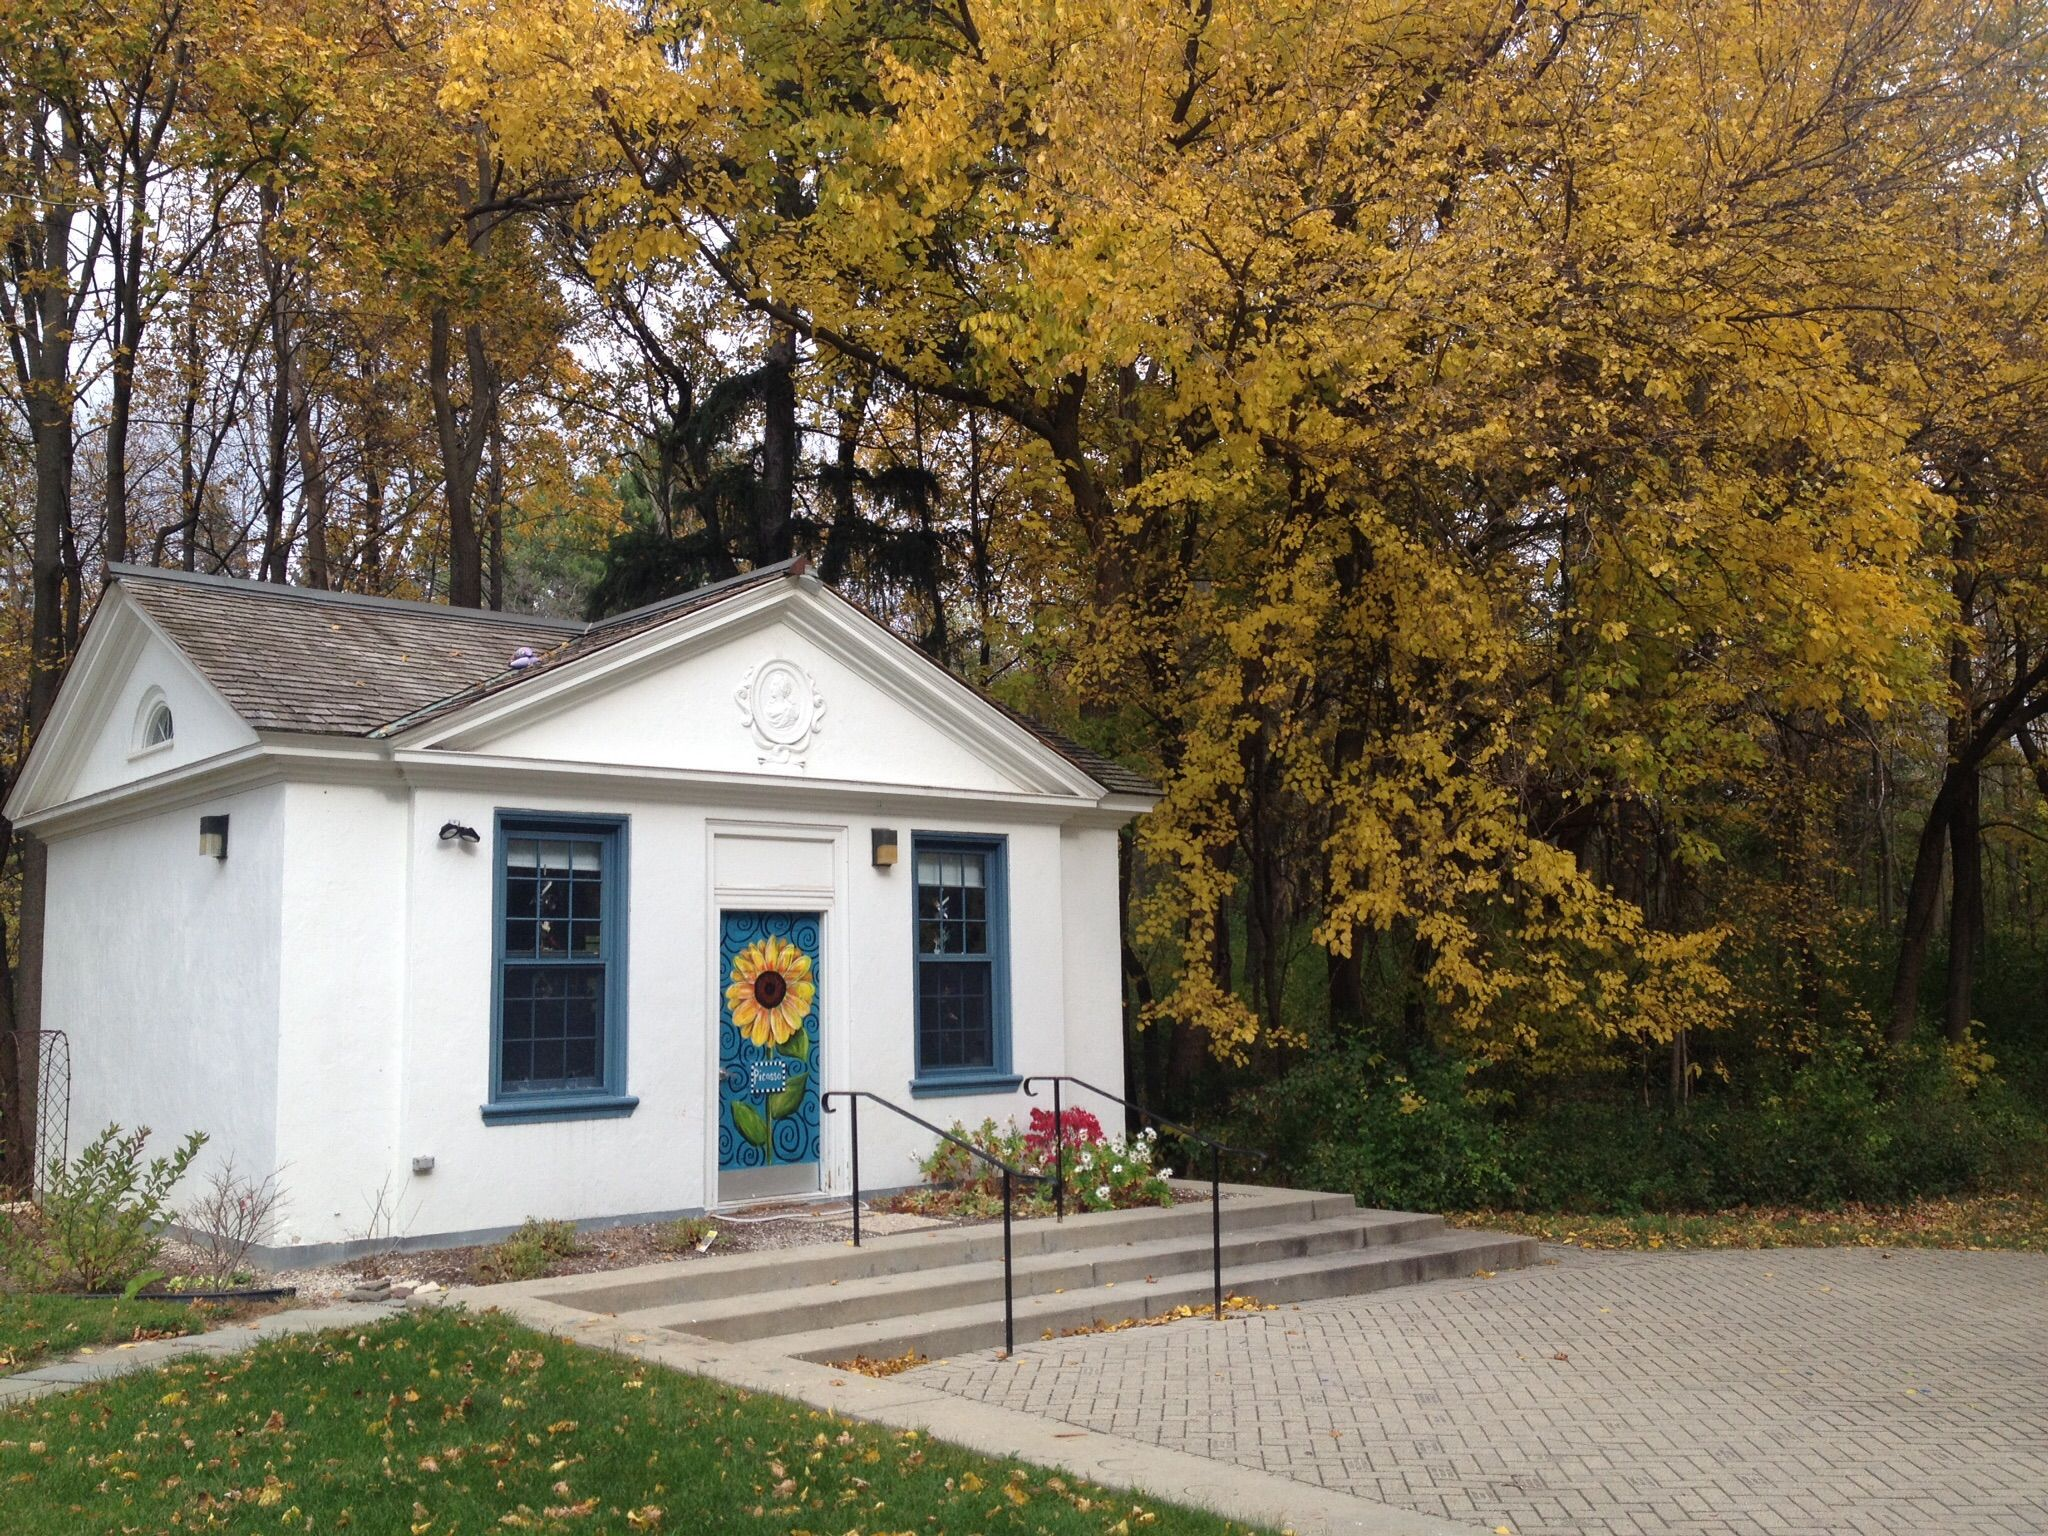 One Of Adler S Pool Houses Converted To An Art Studio Www Adlercenter Org With Images Shed Homes Pool Houses Shed